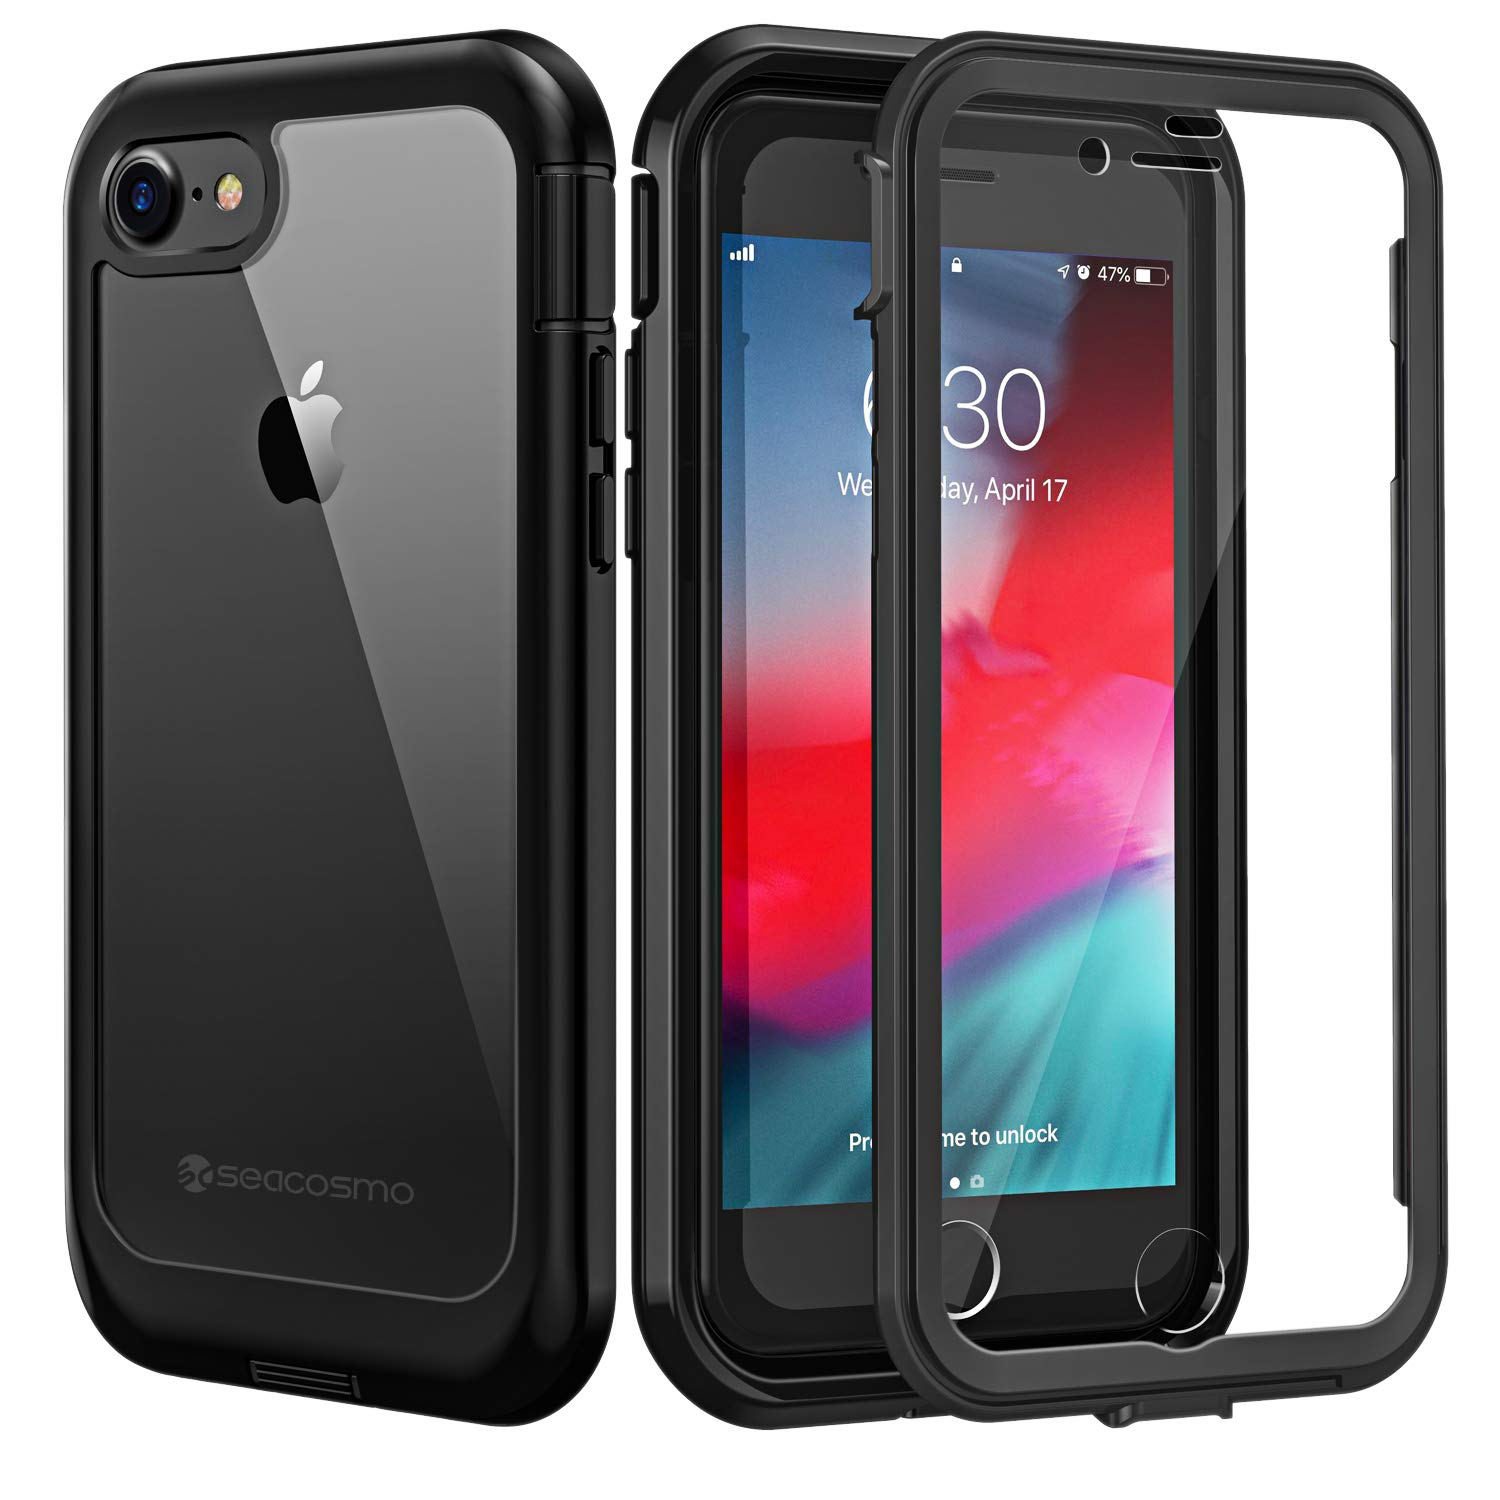 seacosmo iphone 8 case